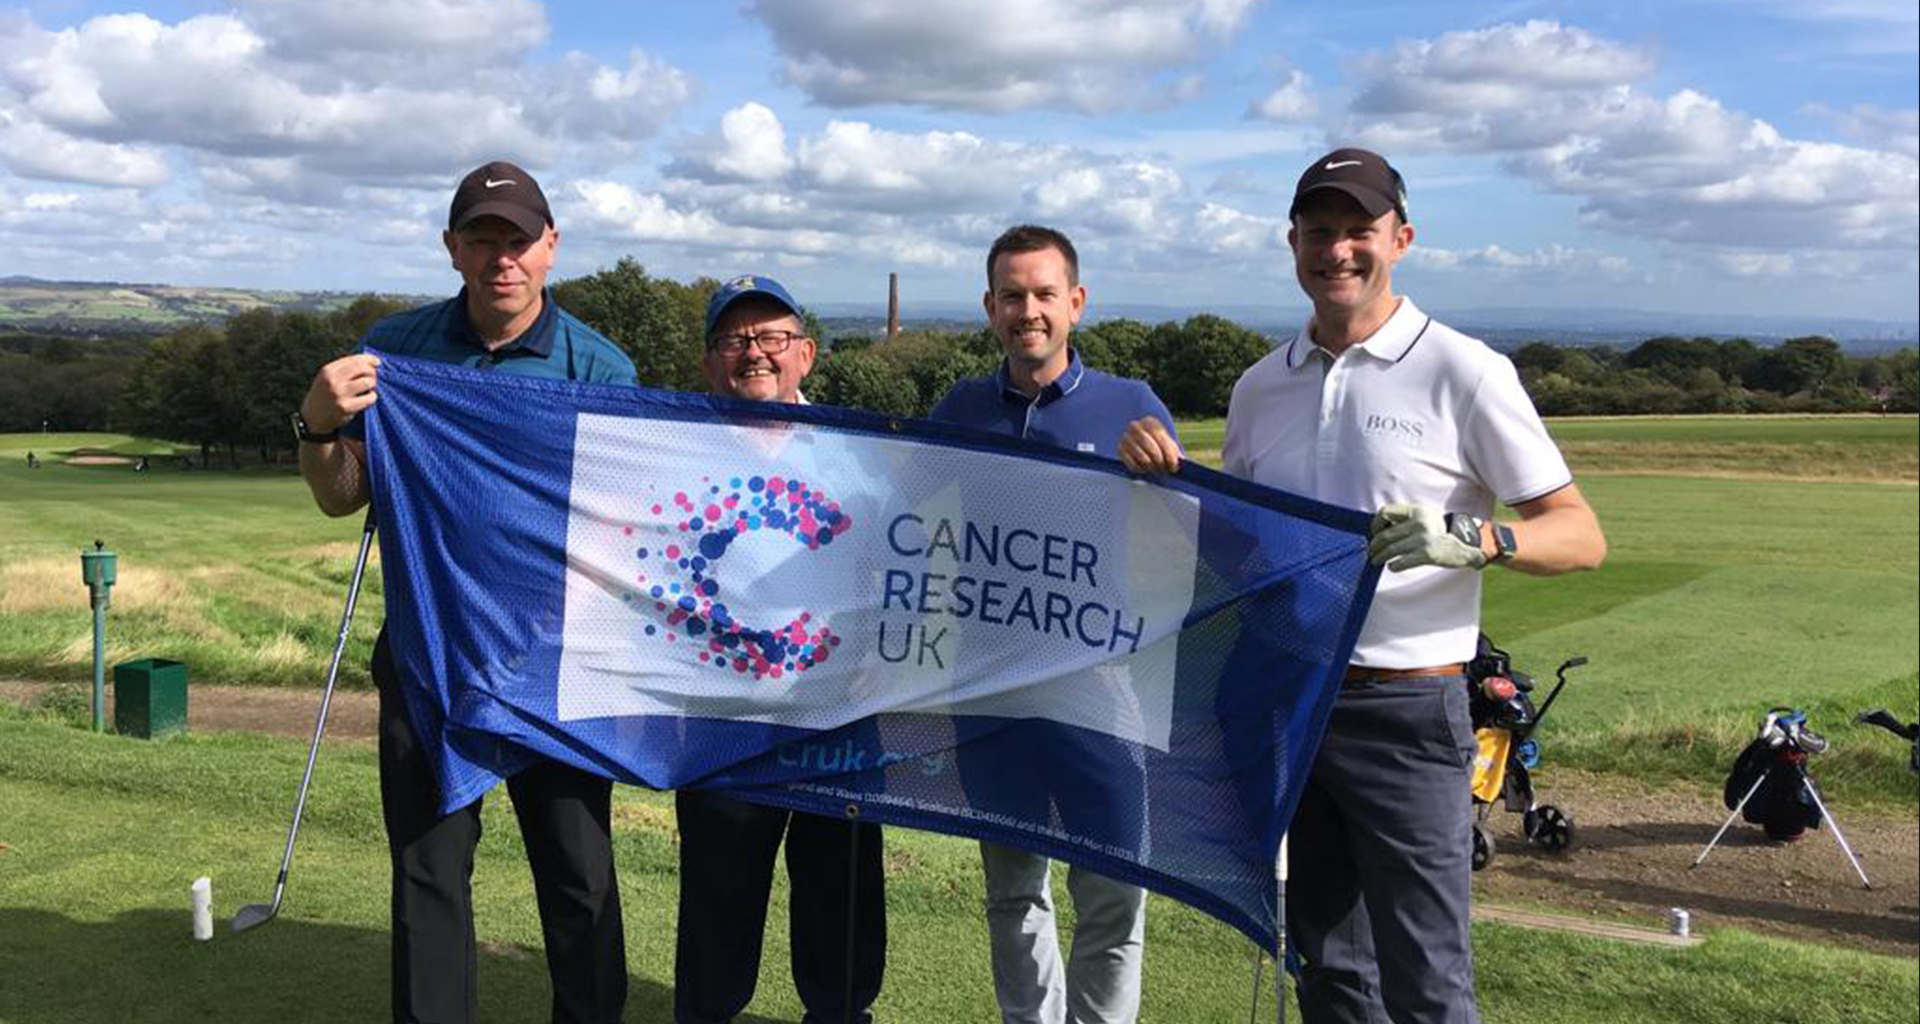 Cowgills raise £6,600 for Cancer Research